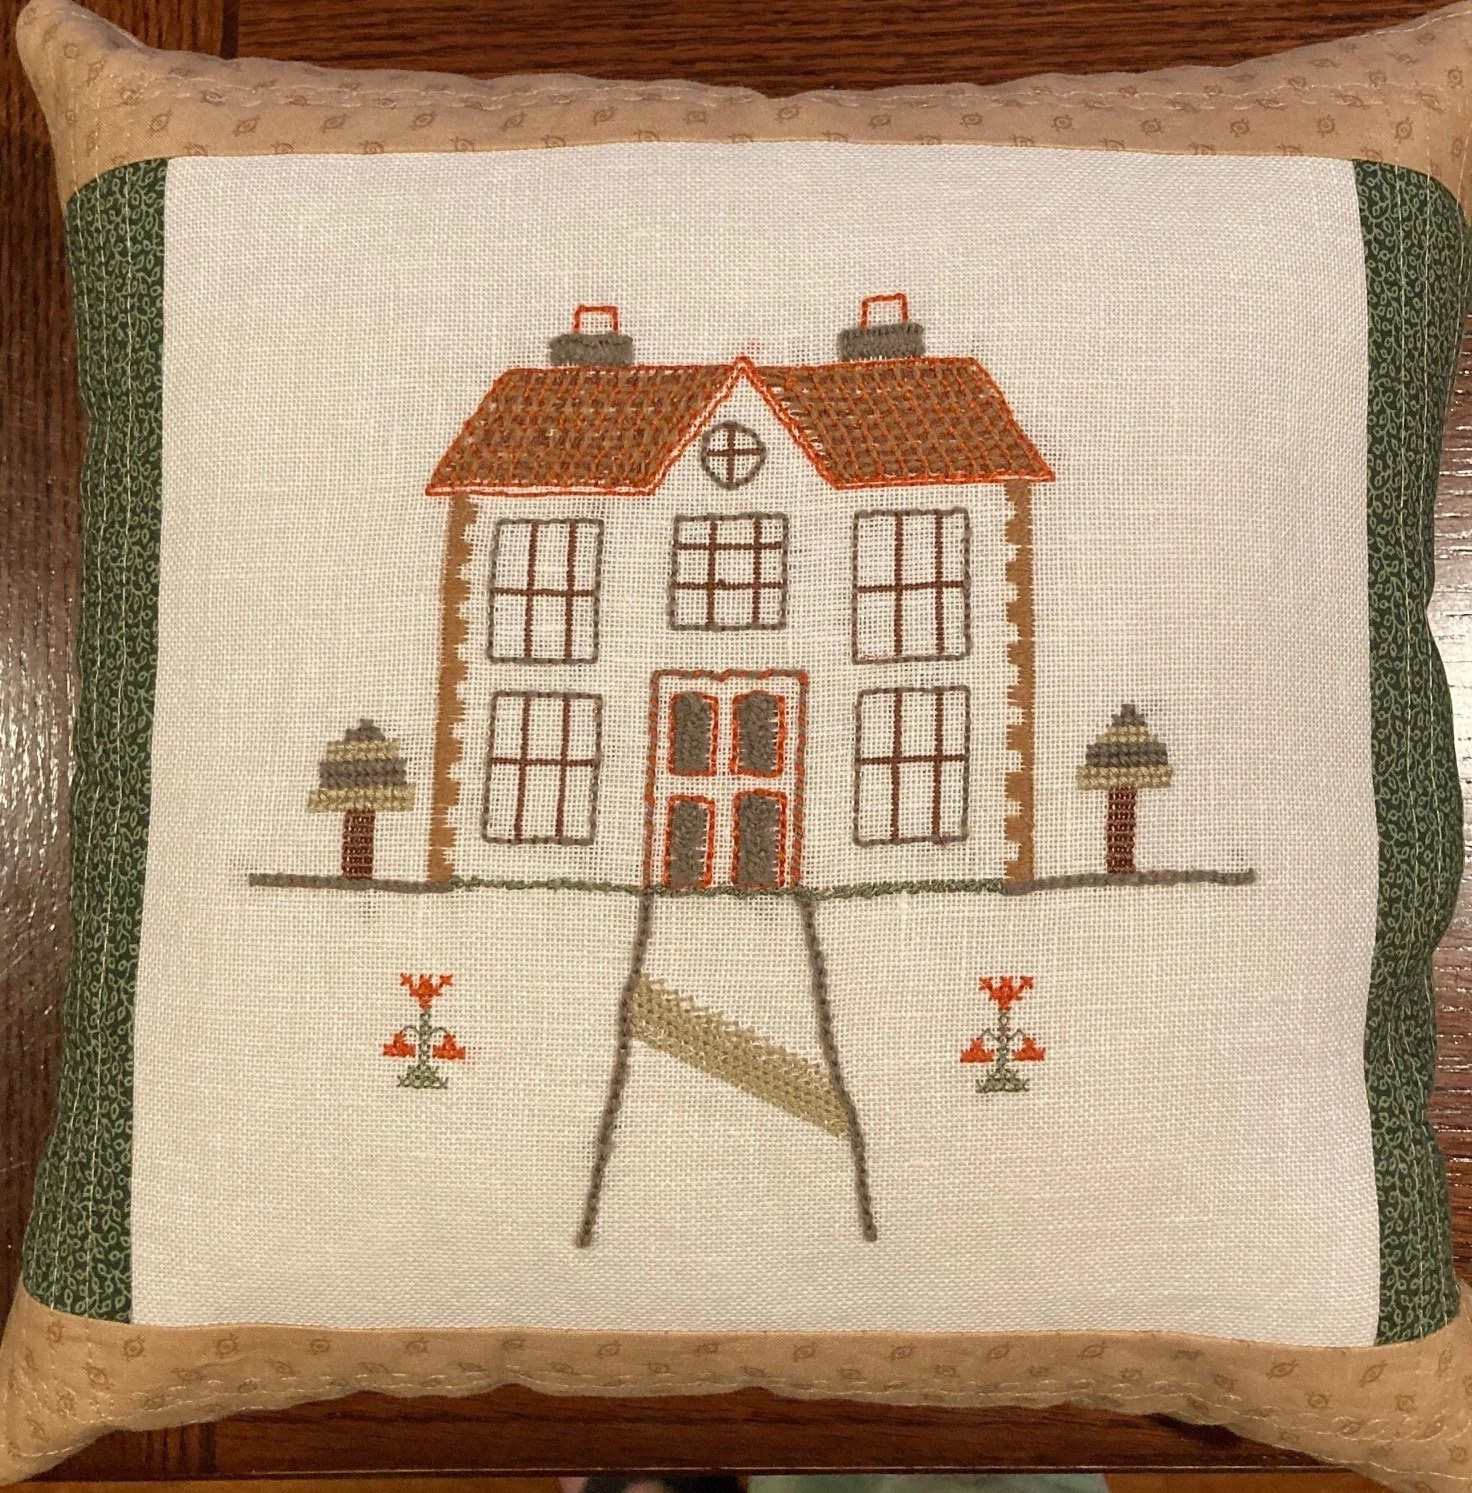 Introduction to Embroidery: Cottage, by Melissa